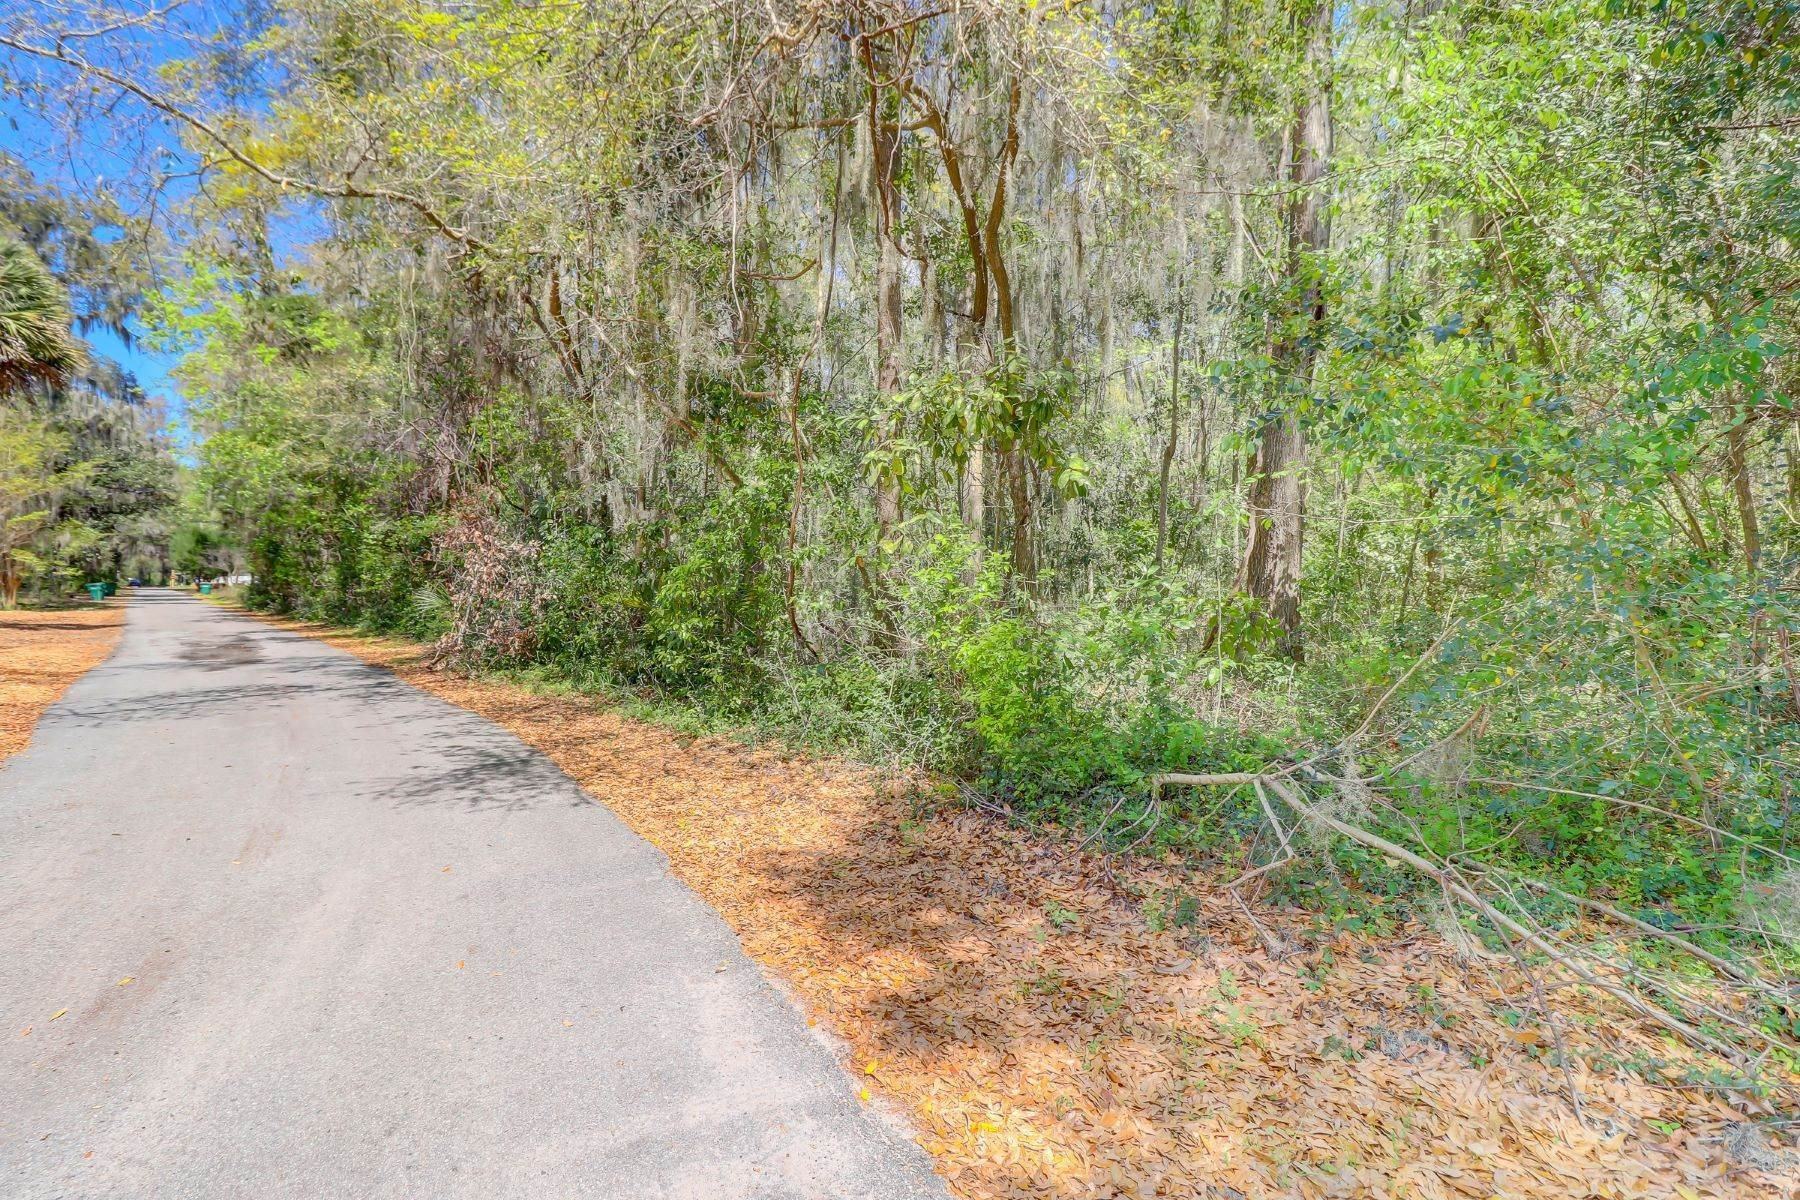 Land for Sale at 25 Maiden Lane Bluffton, South Carolina 29910 United States